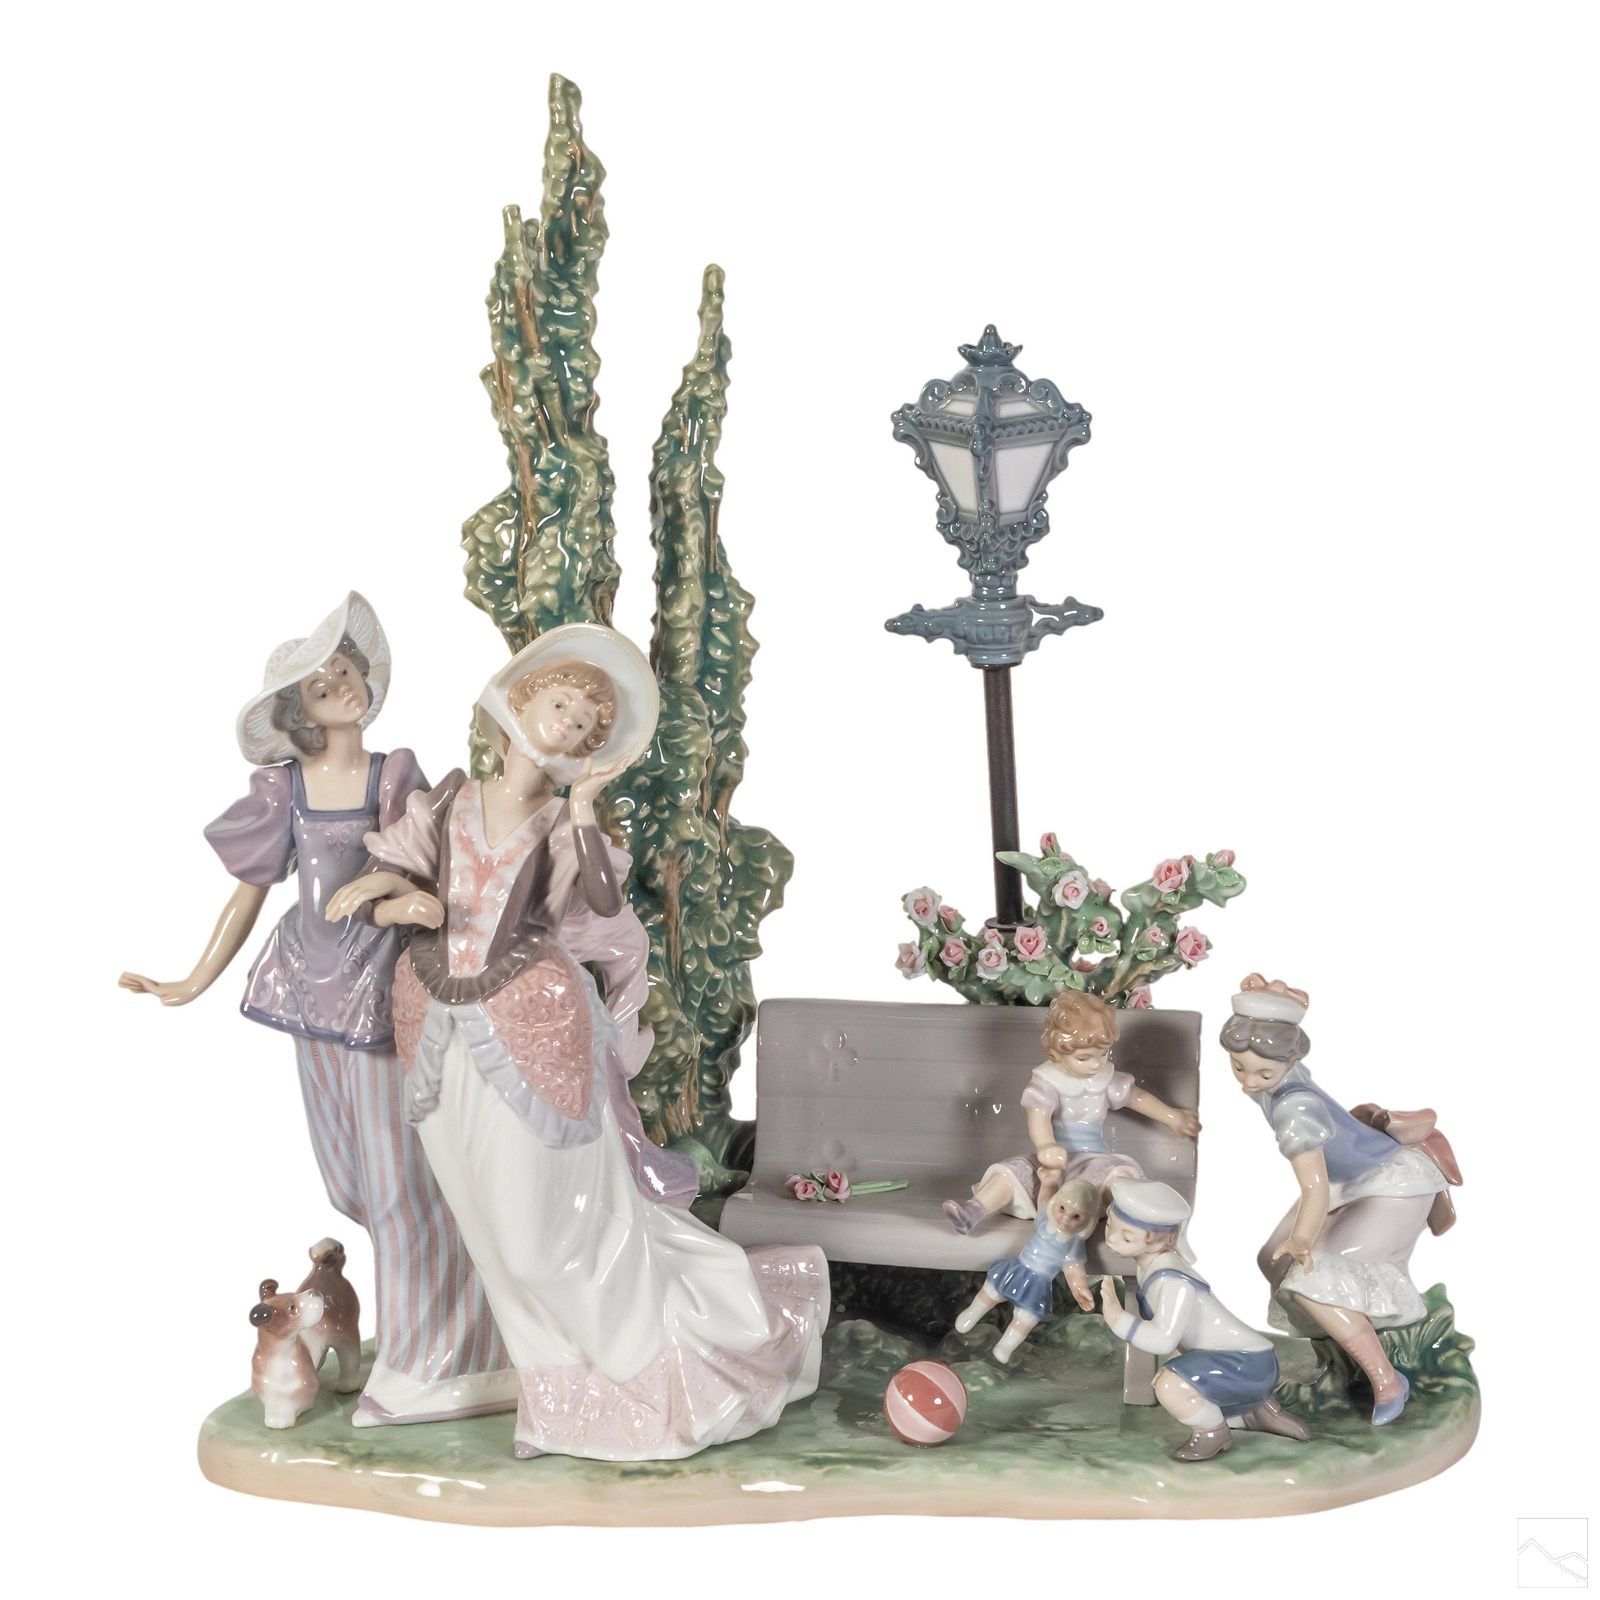 Lladro A Stroll In The Park Figurine Sculpture